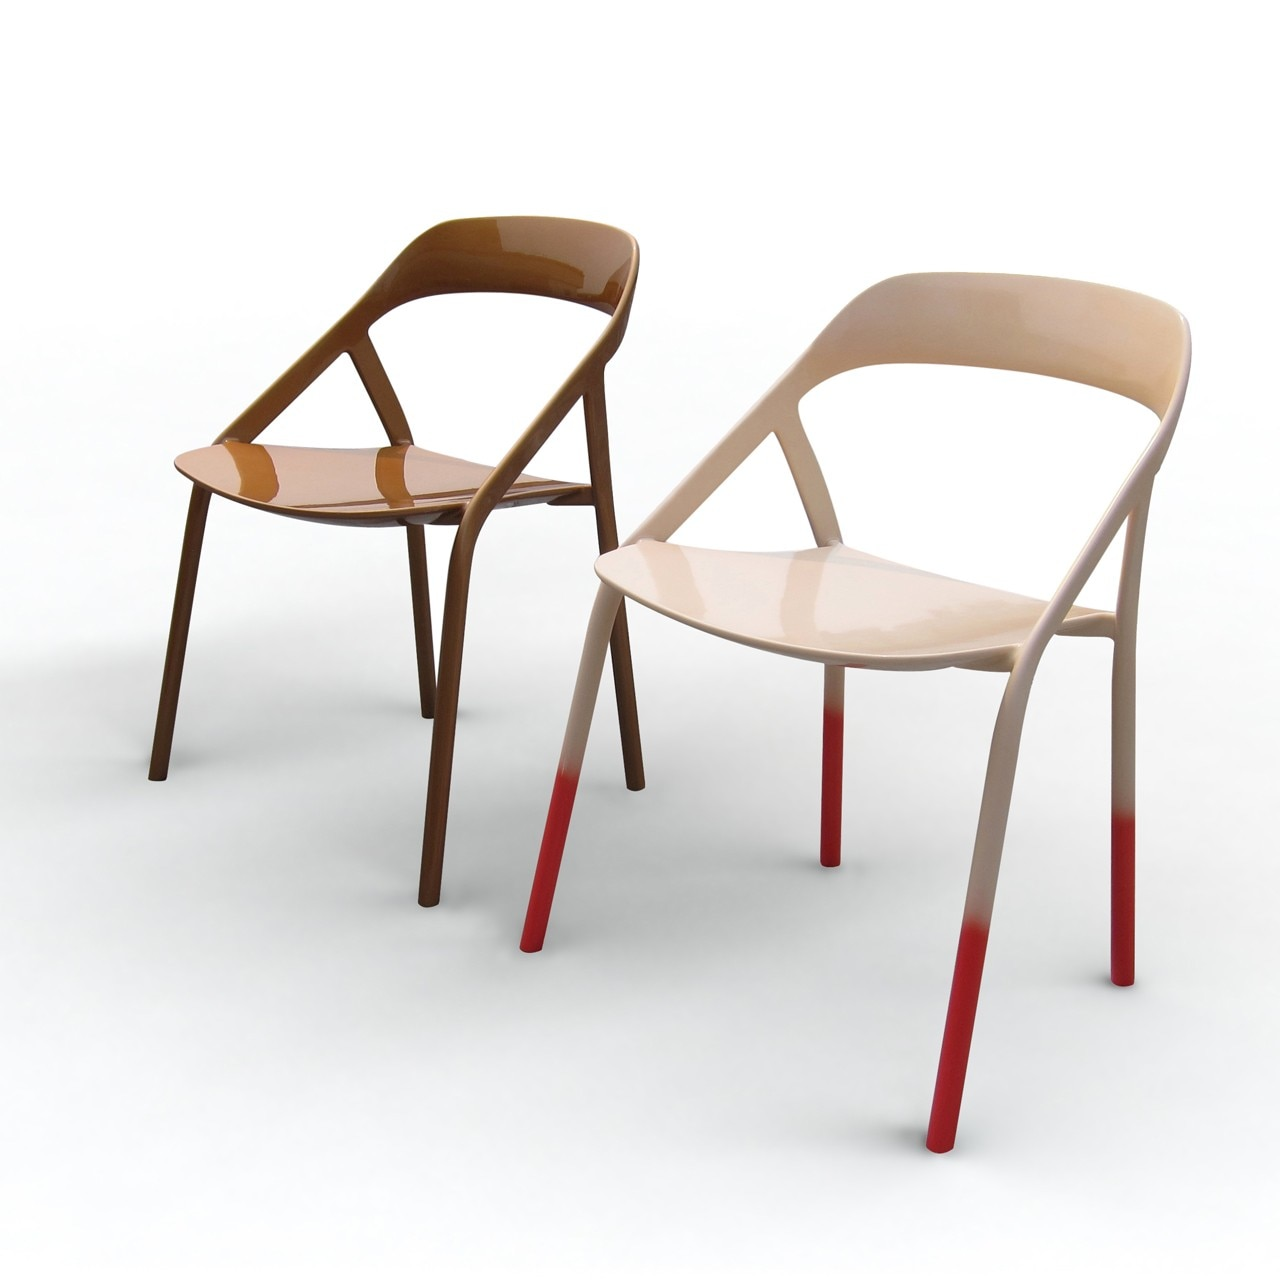 Viva Mexico Chair Carbon Fiber Chair Domus